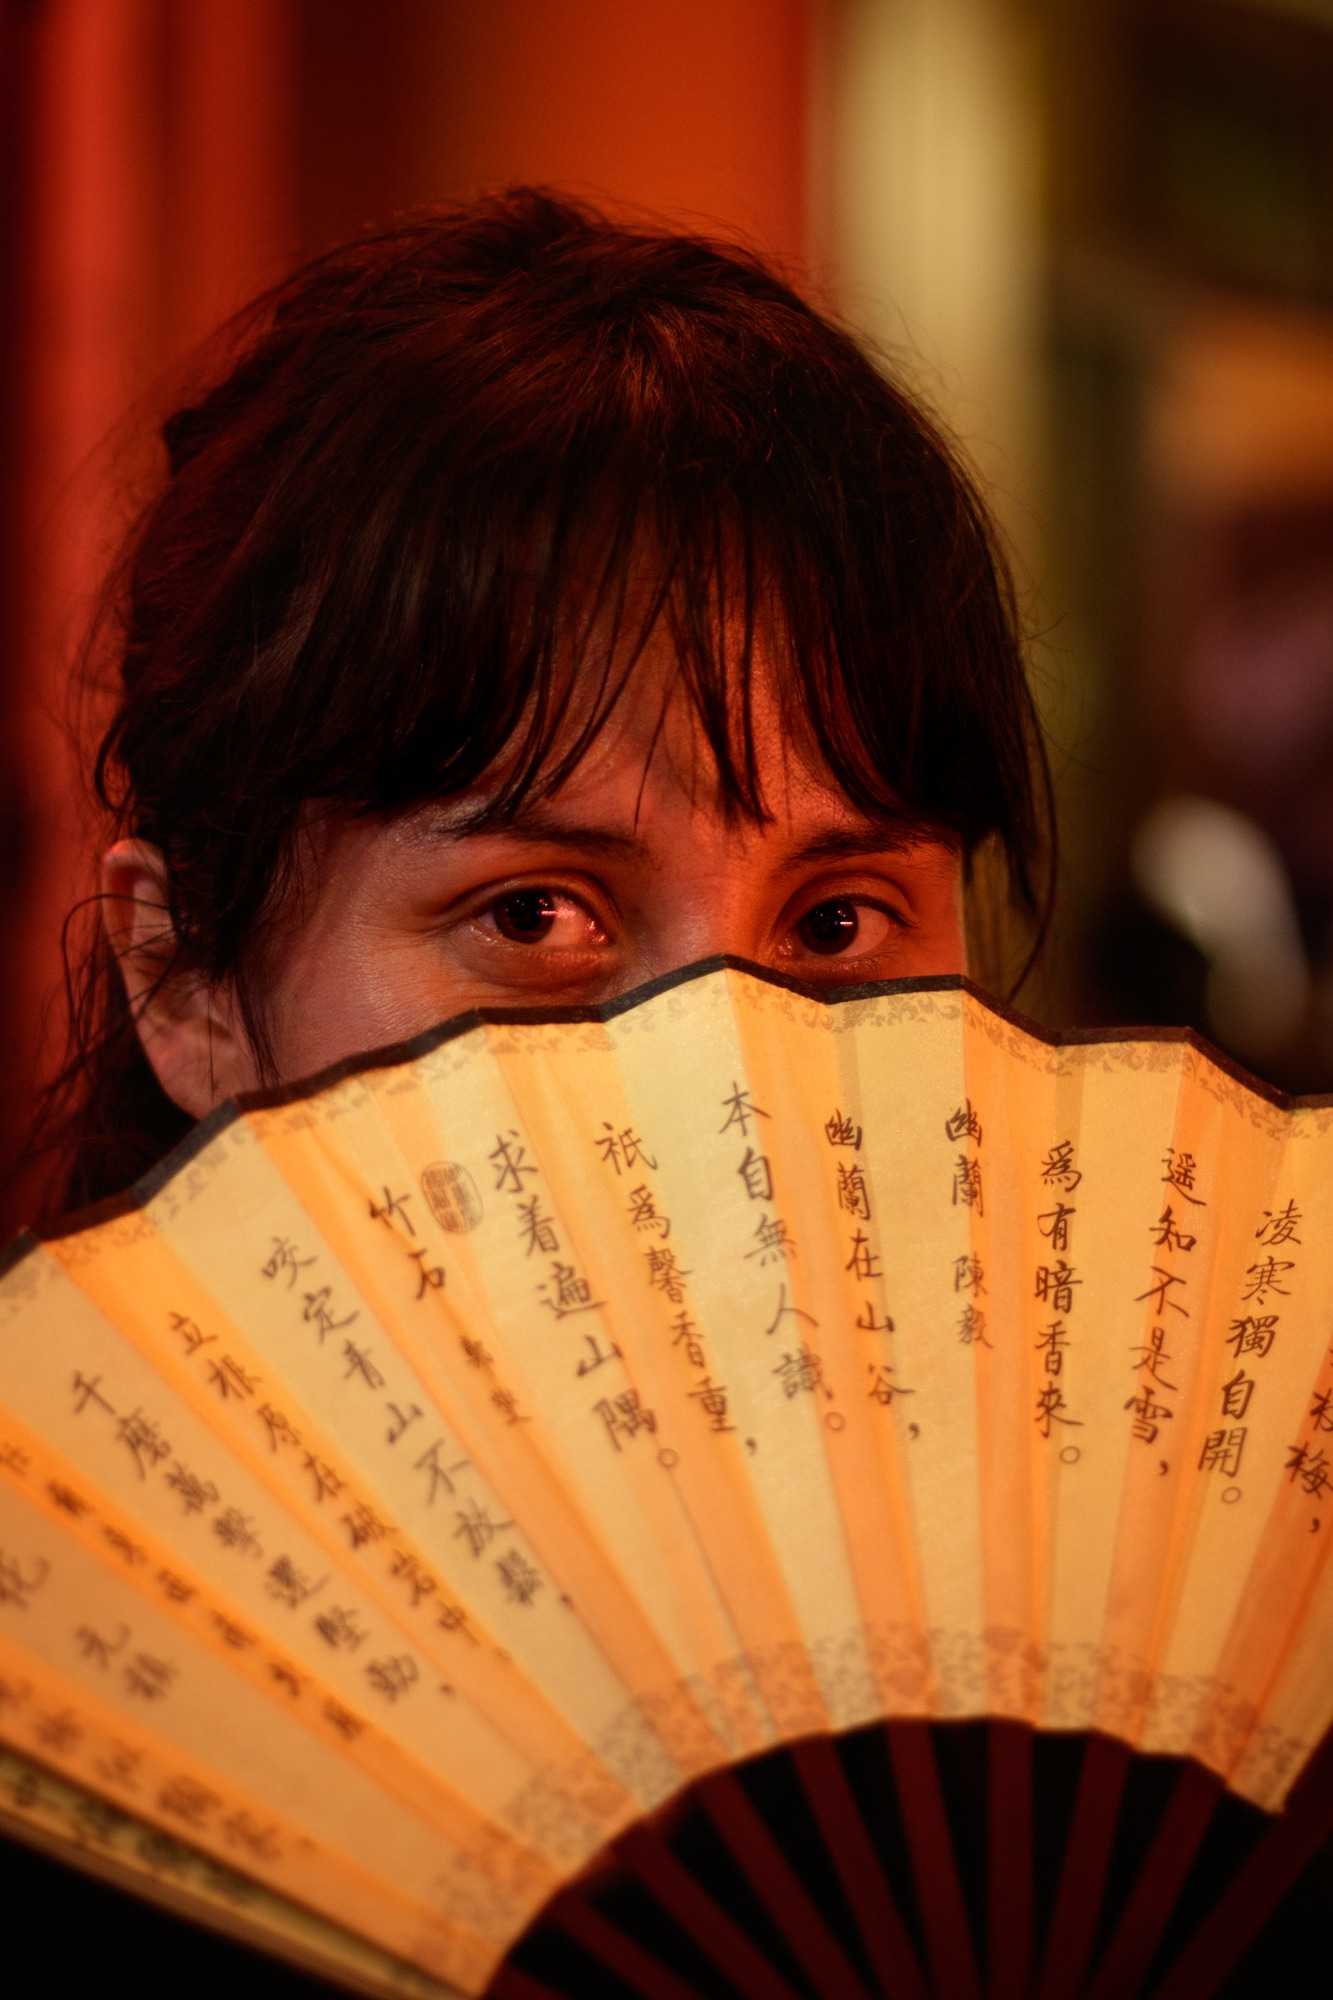 A tourist covers her face with a hand held fan at a restaurant in Hoi An.